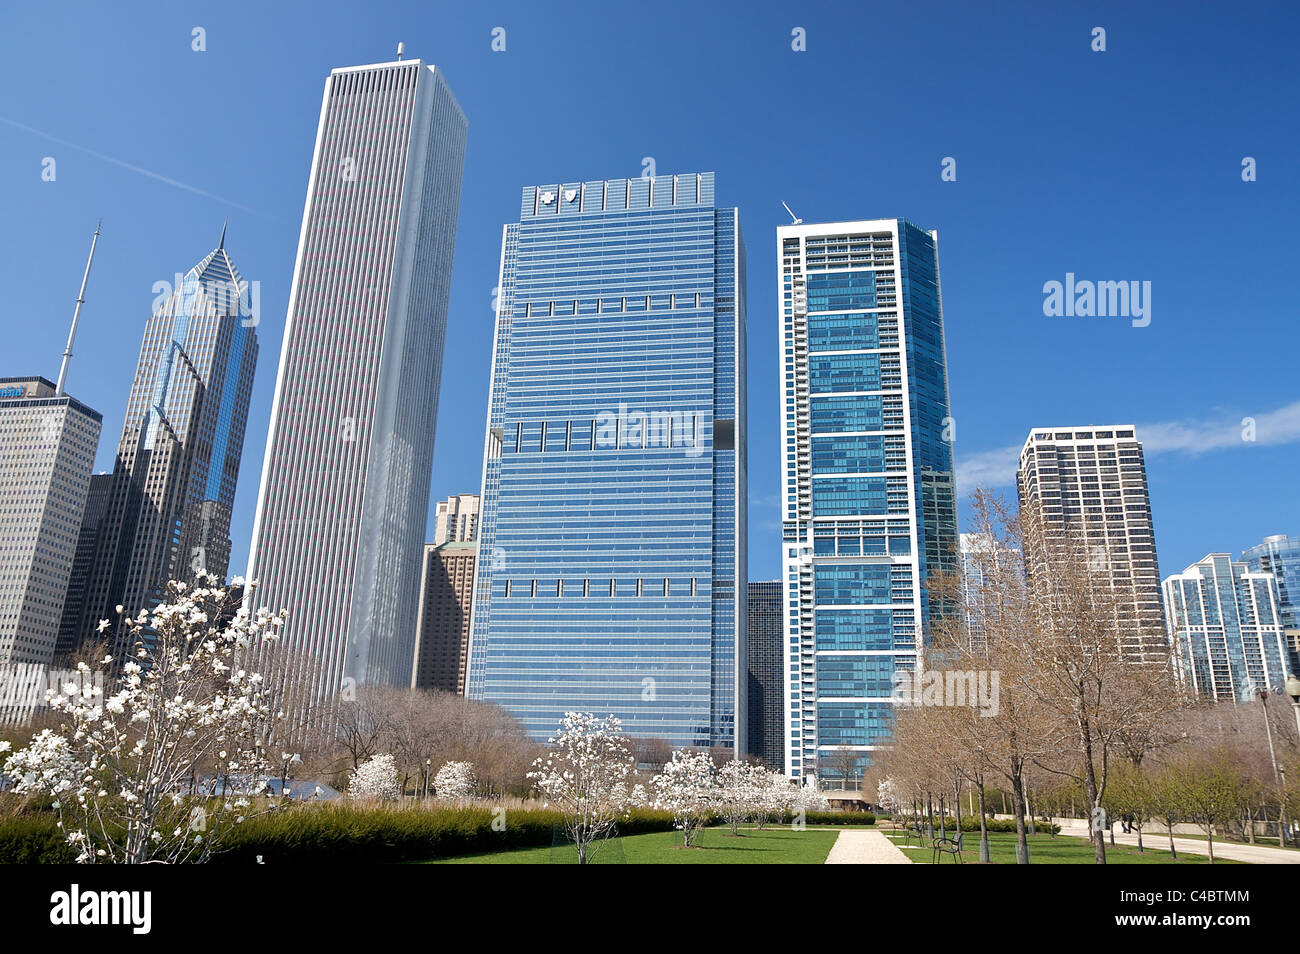 View of skyscrapers from Daley Bicentennial Plaza in Chicago's Grant Park Stock Photo